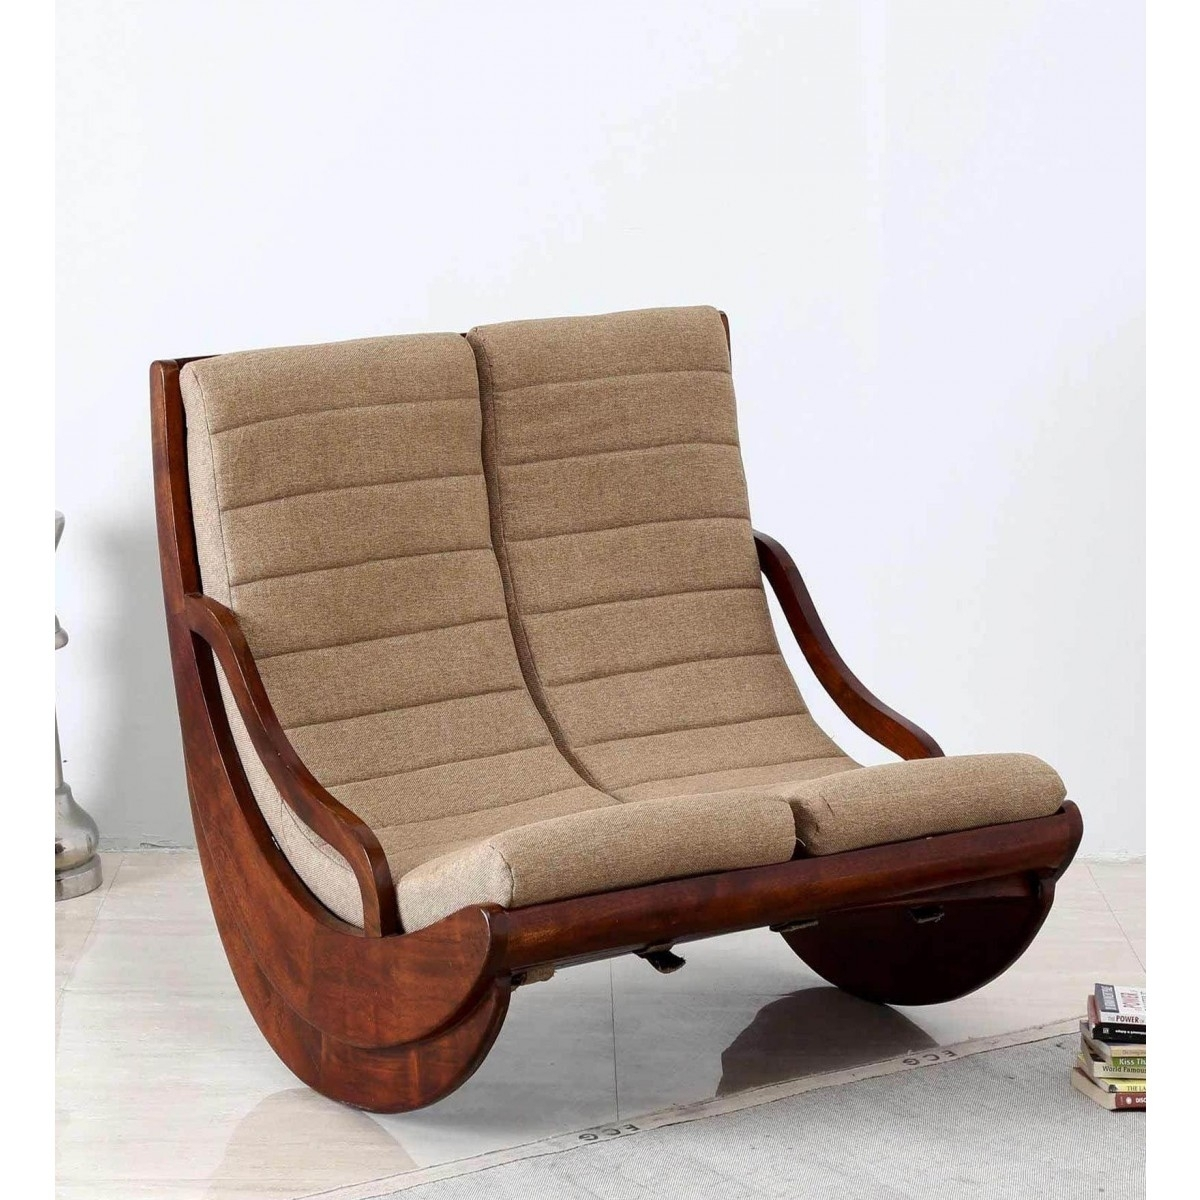 Best Wooden Stylish Designed Rocking Chair Online !! With Rocking Chairs (#3 of 15)